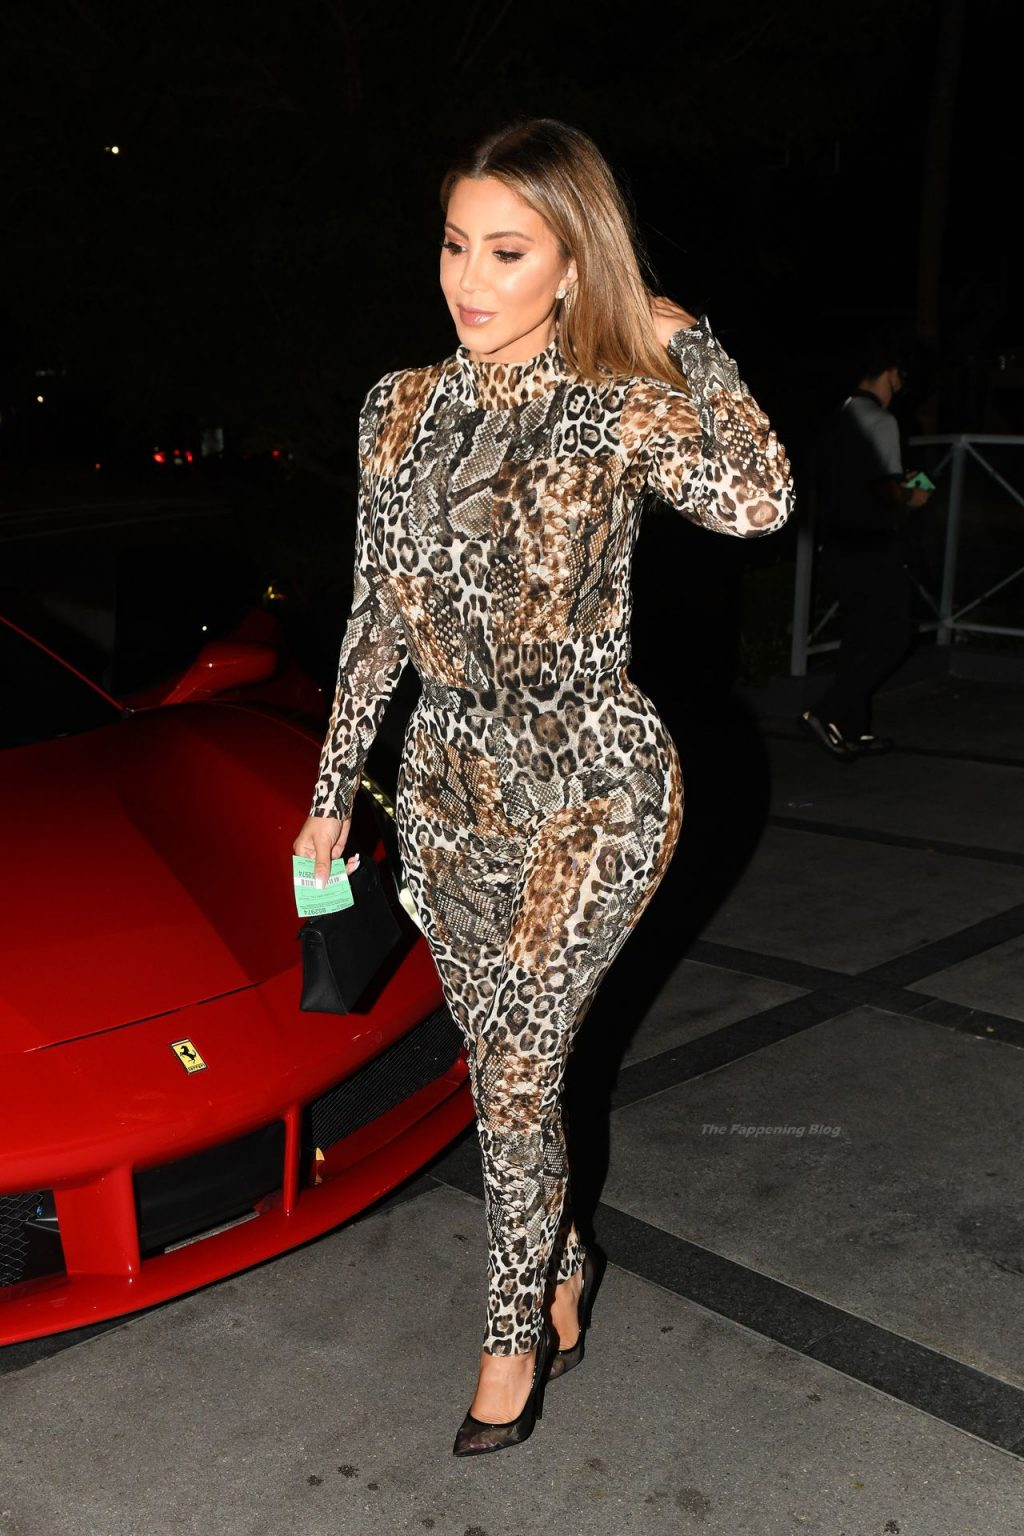 Larsa Pippen Looks Sexy in An Animal Print Catsuit (22 Photos)